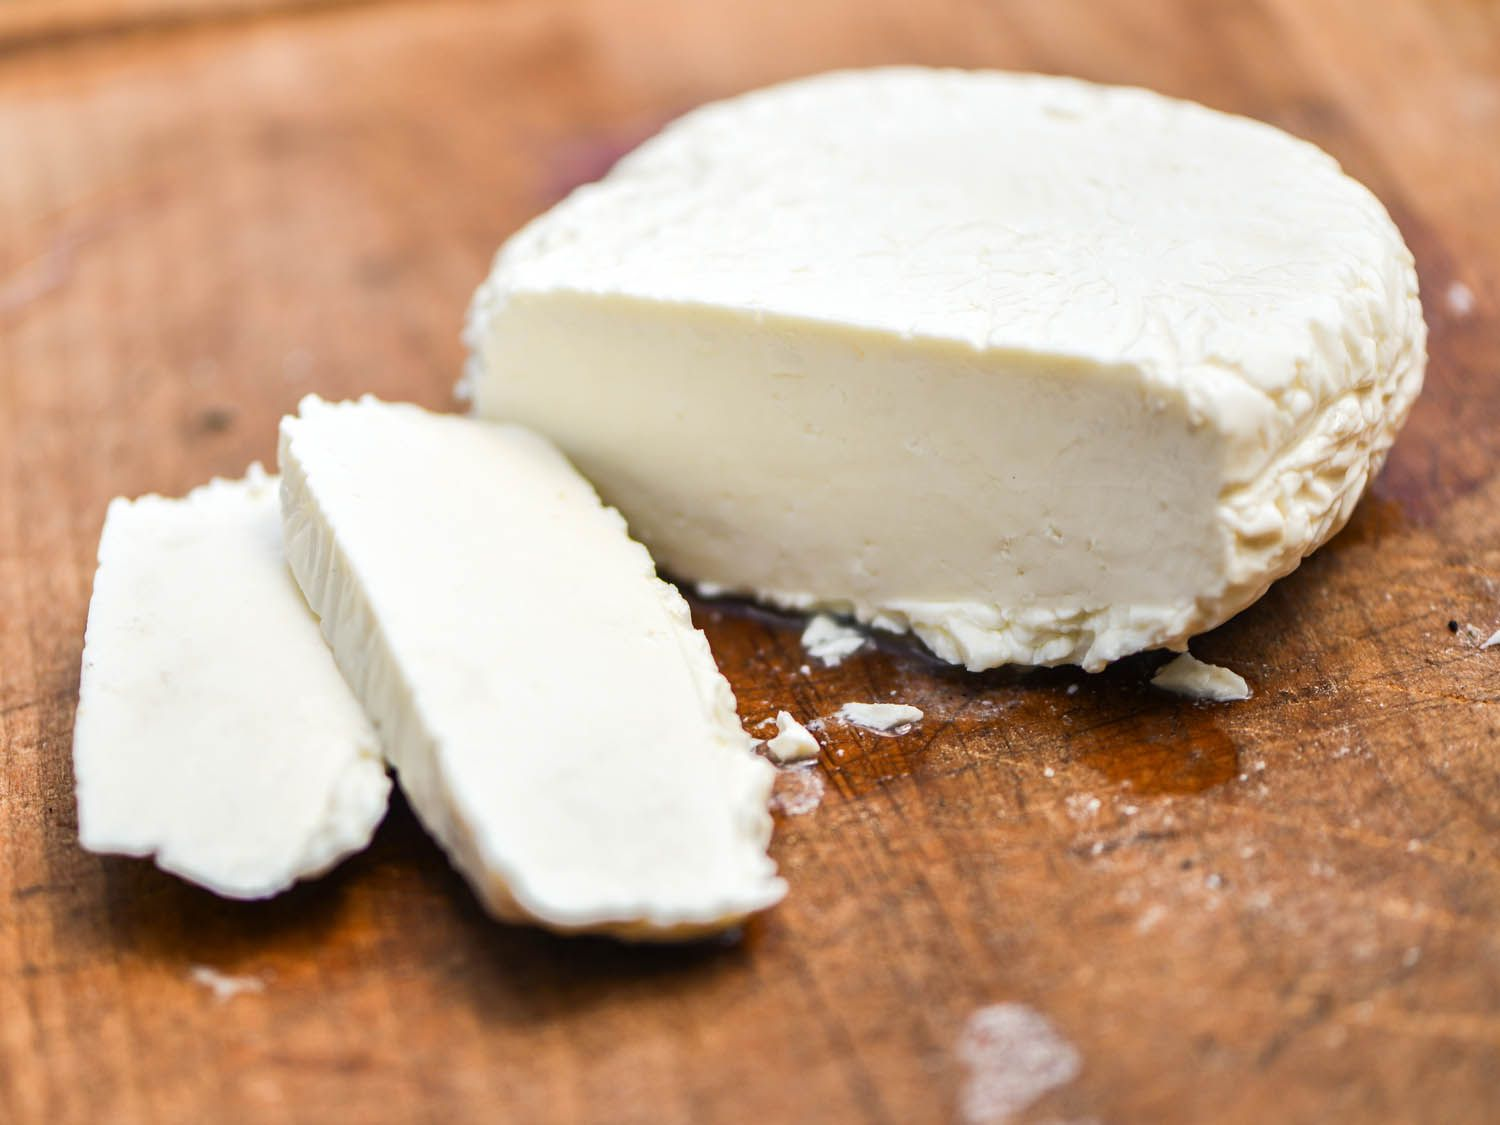 20140710-cheeses-you-can-grill-queso-panela-joshua-bousel.jpg